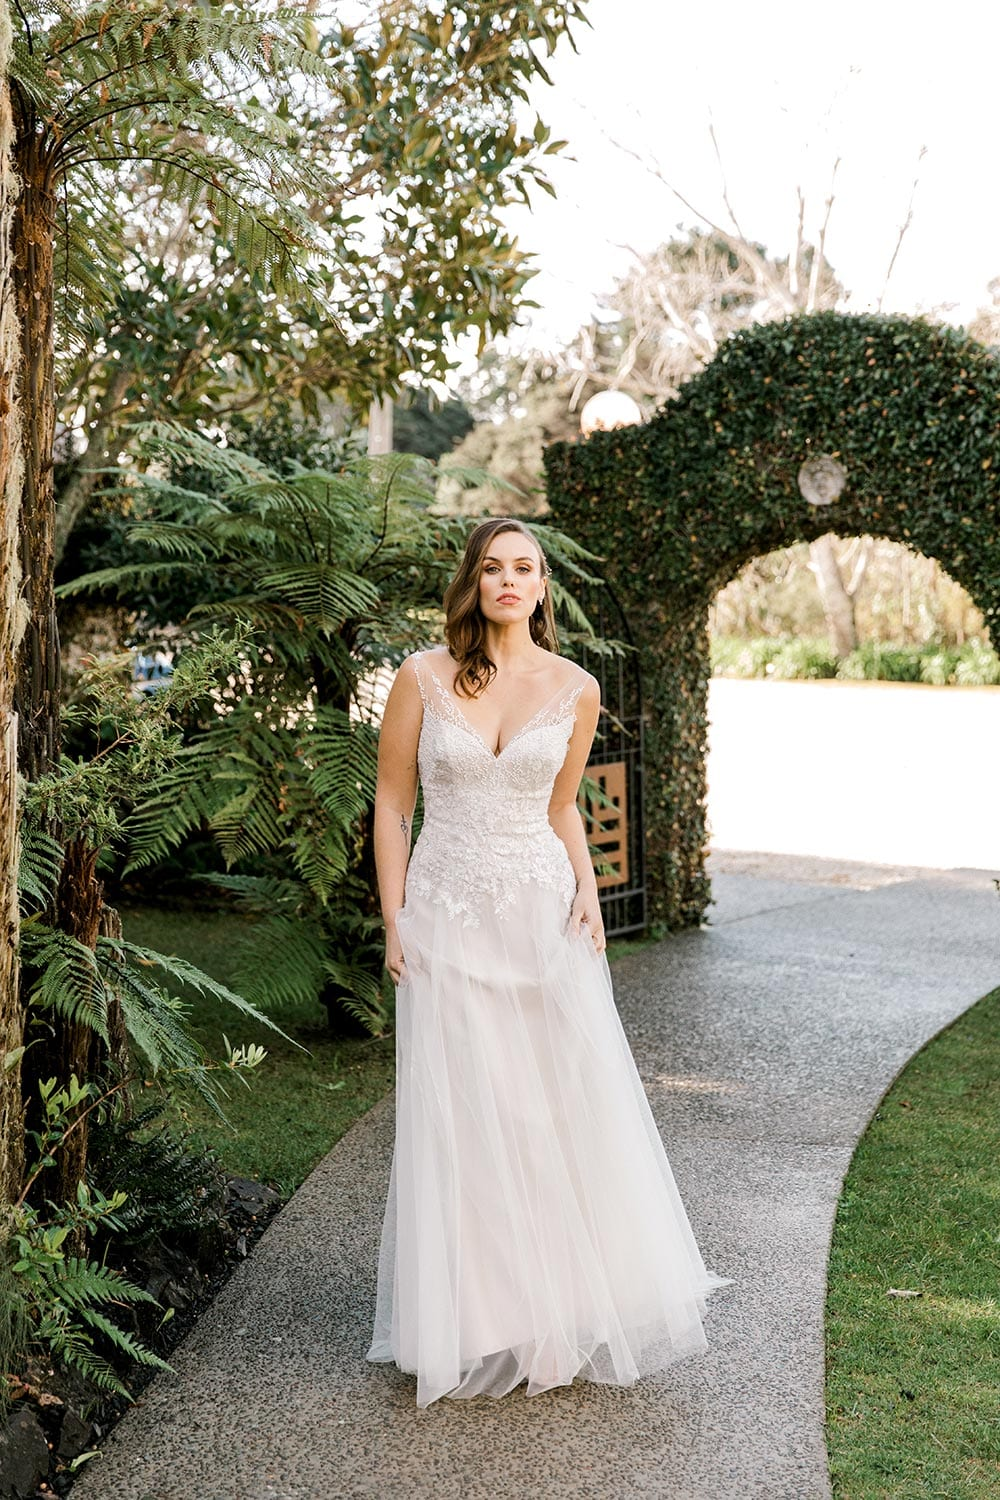 Hazel Wedding Dress from Vinka Design. Wedding dress with highly-sculptured bodice down to the hipline, at which point it gently flares into a beautiful and dreamy tulle skirt and train. Beautiful and delicate embroidery. Portrait with full dress length.